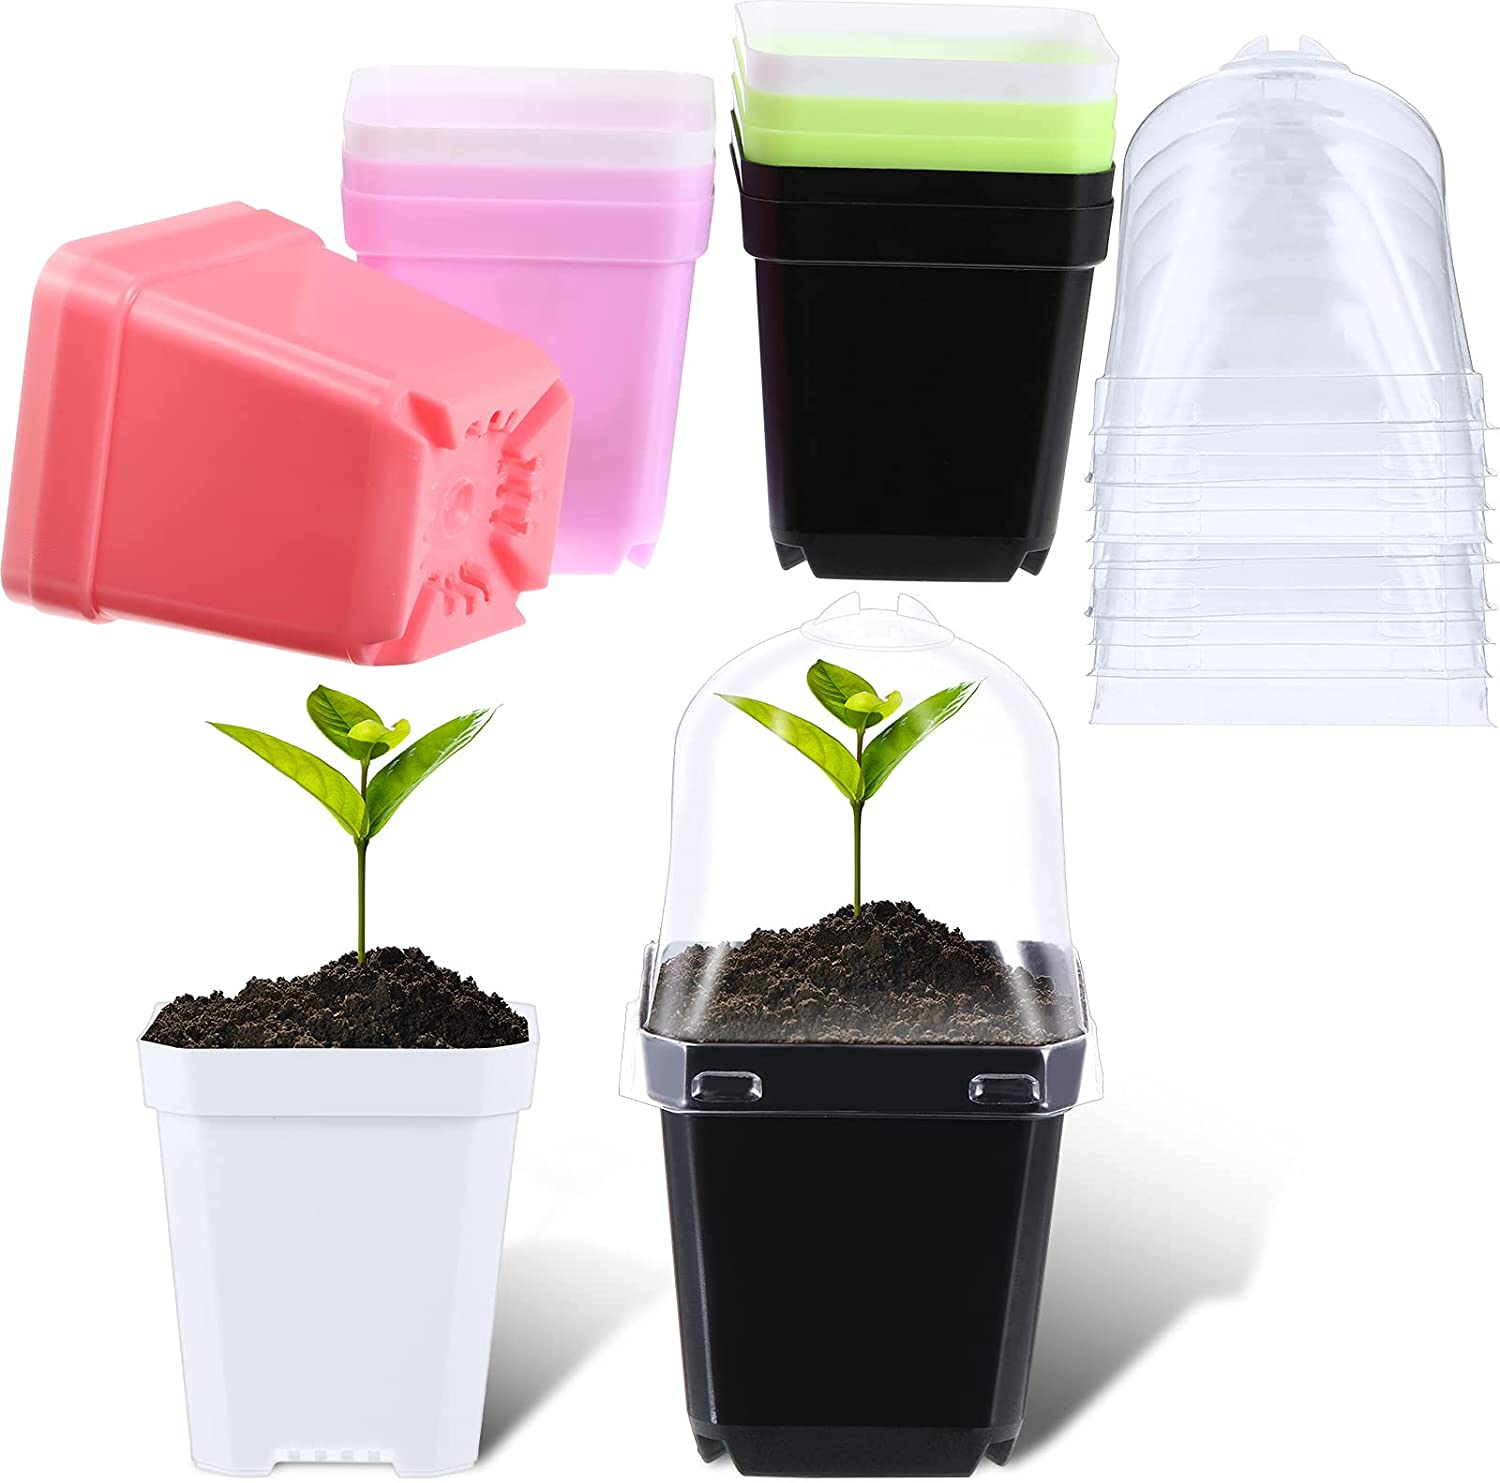 10 Pieces Square Plastic Plant Pot Plant Nursery Flower Pot with 10 Pieces Humidity Dome Plastic Seedling Pot Colorful Seedling Nursery Transplanting Planter Container for Indoor Outdoor Garden Office